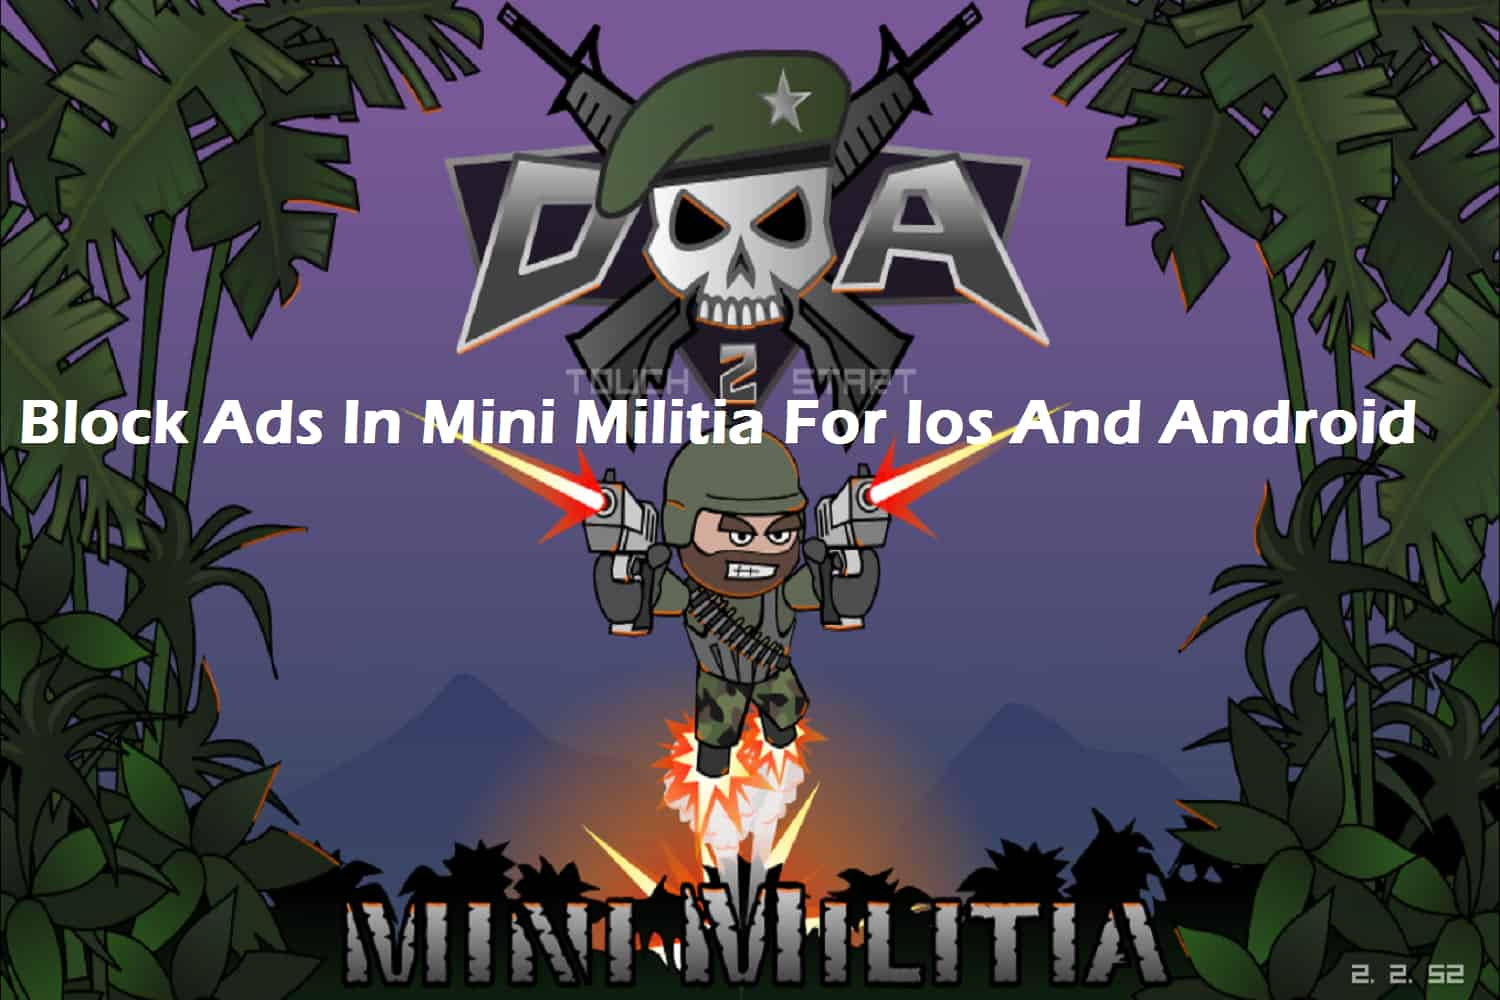 Block Ads In Mini Militia